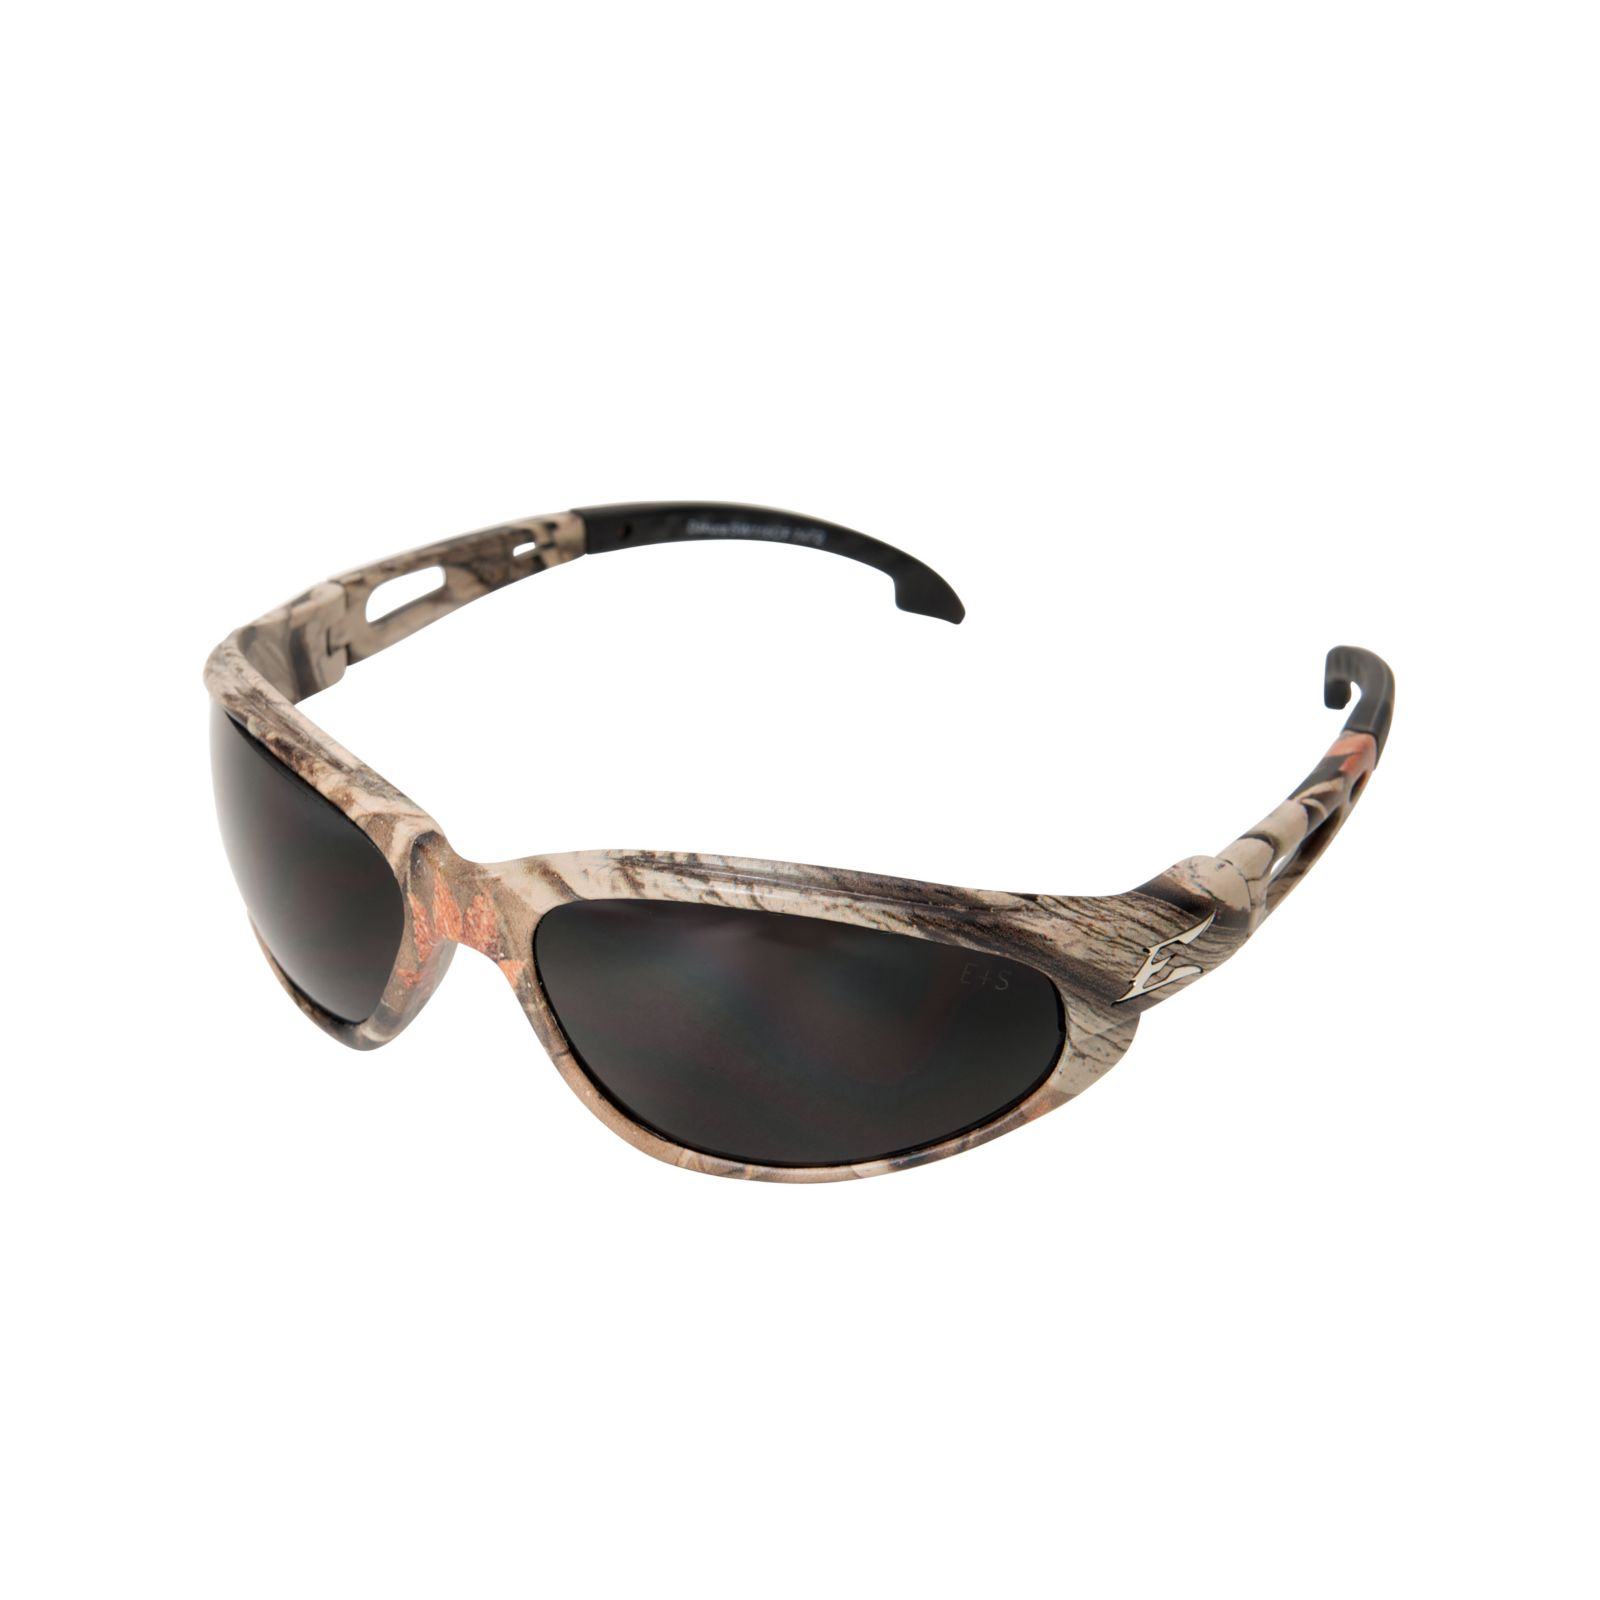 Wolf Peak International TSM216CF - Safety Glasses - Dakura - Forest Camouflage / Polarized Smoke Lens